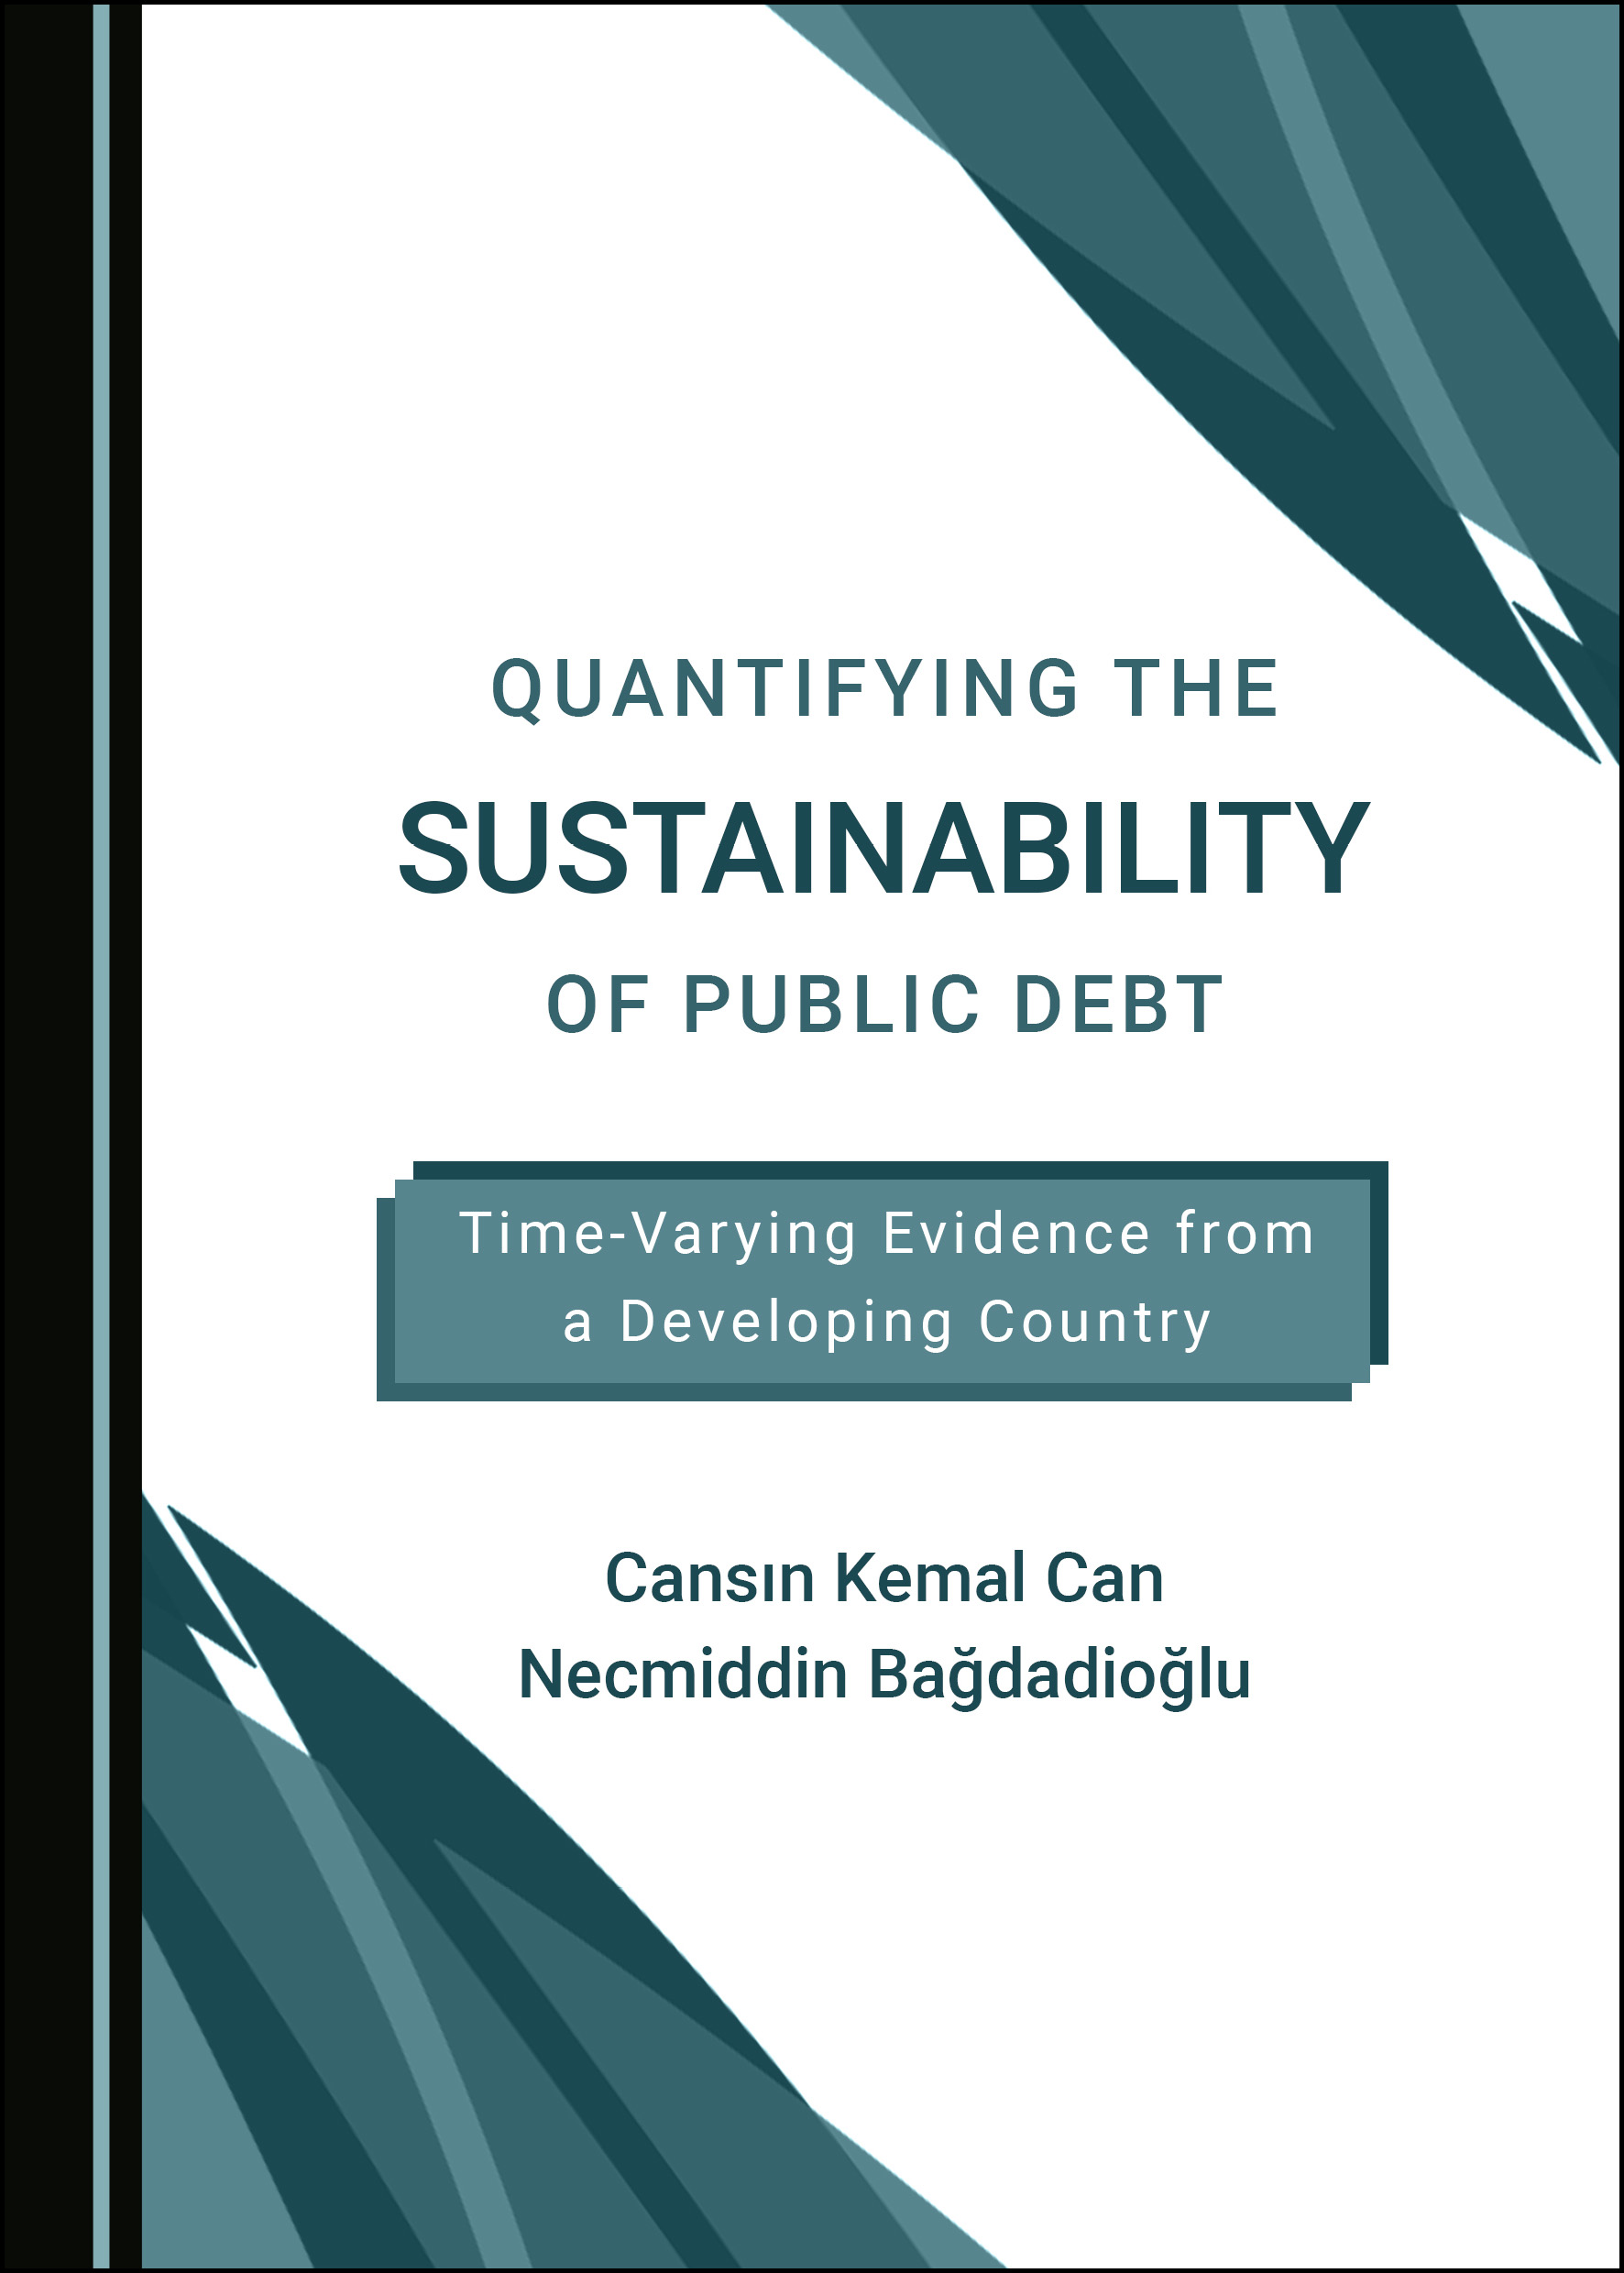 Quantifying the Sustainability of Public Debt: Time-Varying Evidence from a Developing Country